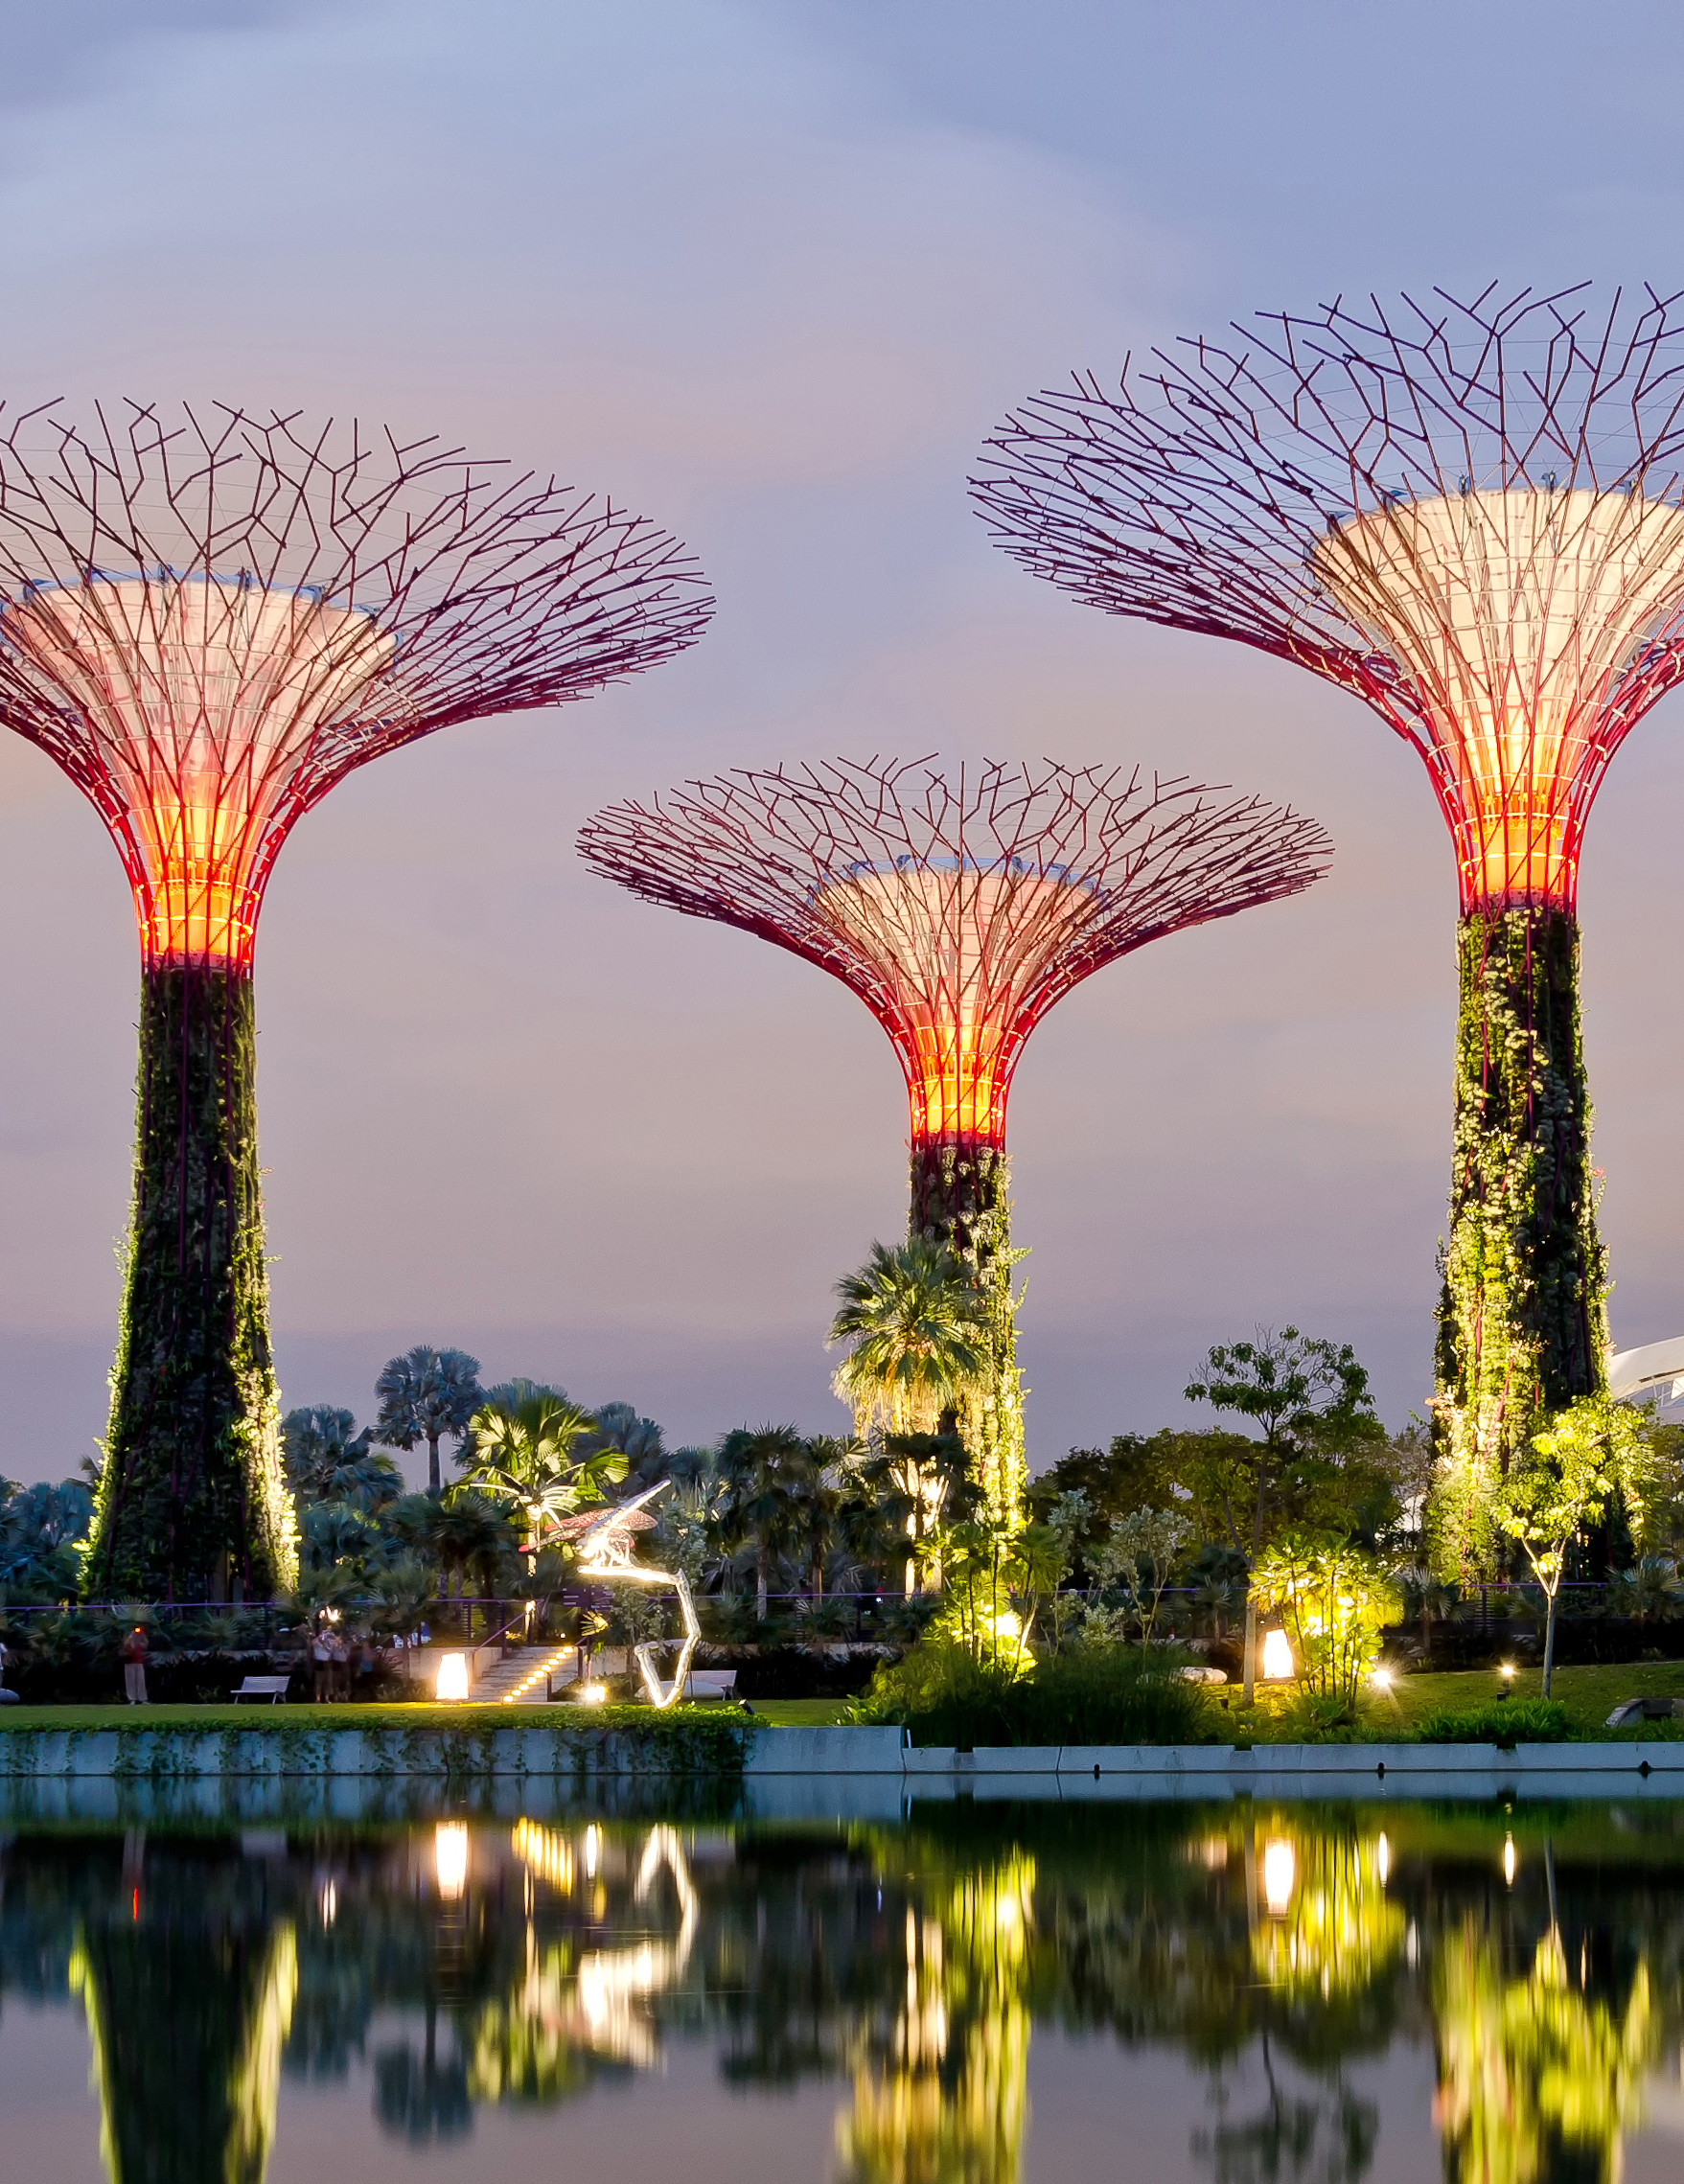 Davos 2121 and the Singapore Opportunity